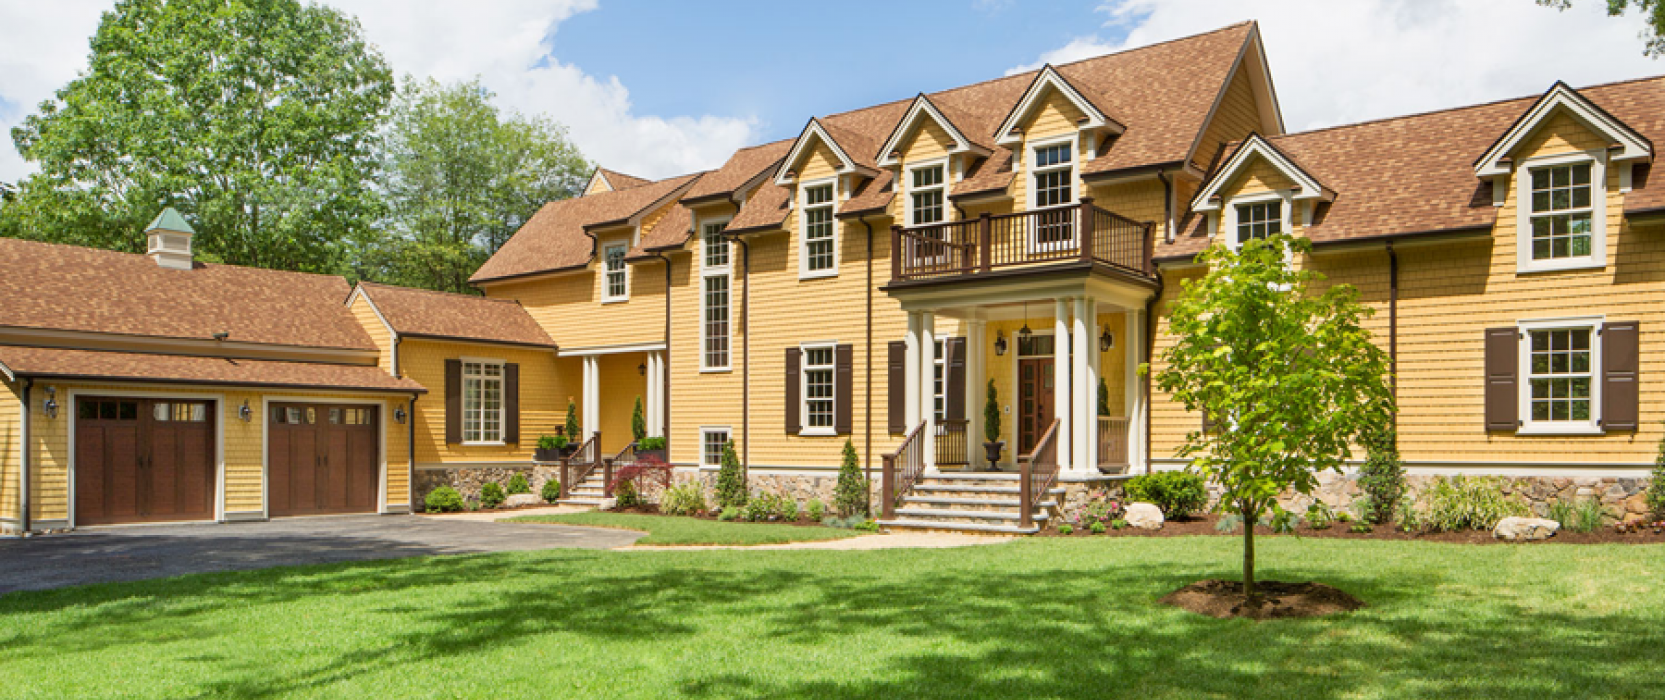 Real Estate Pick of the Week: Weston Residence by Atlas Contracting